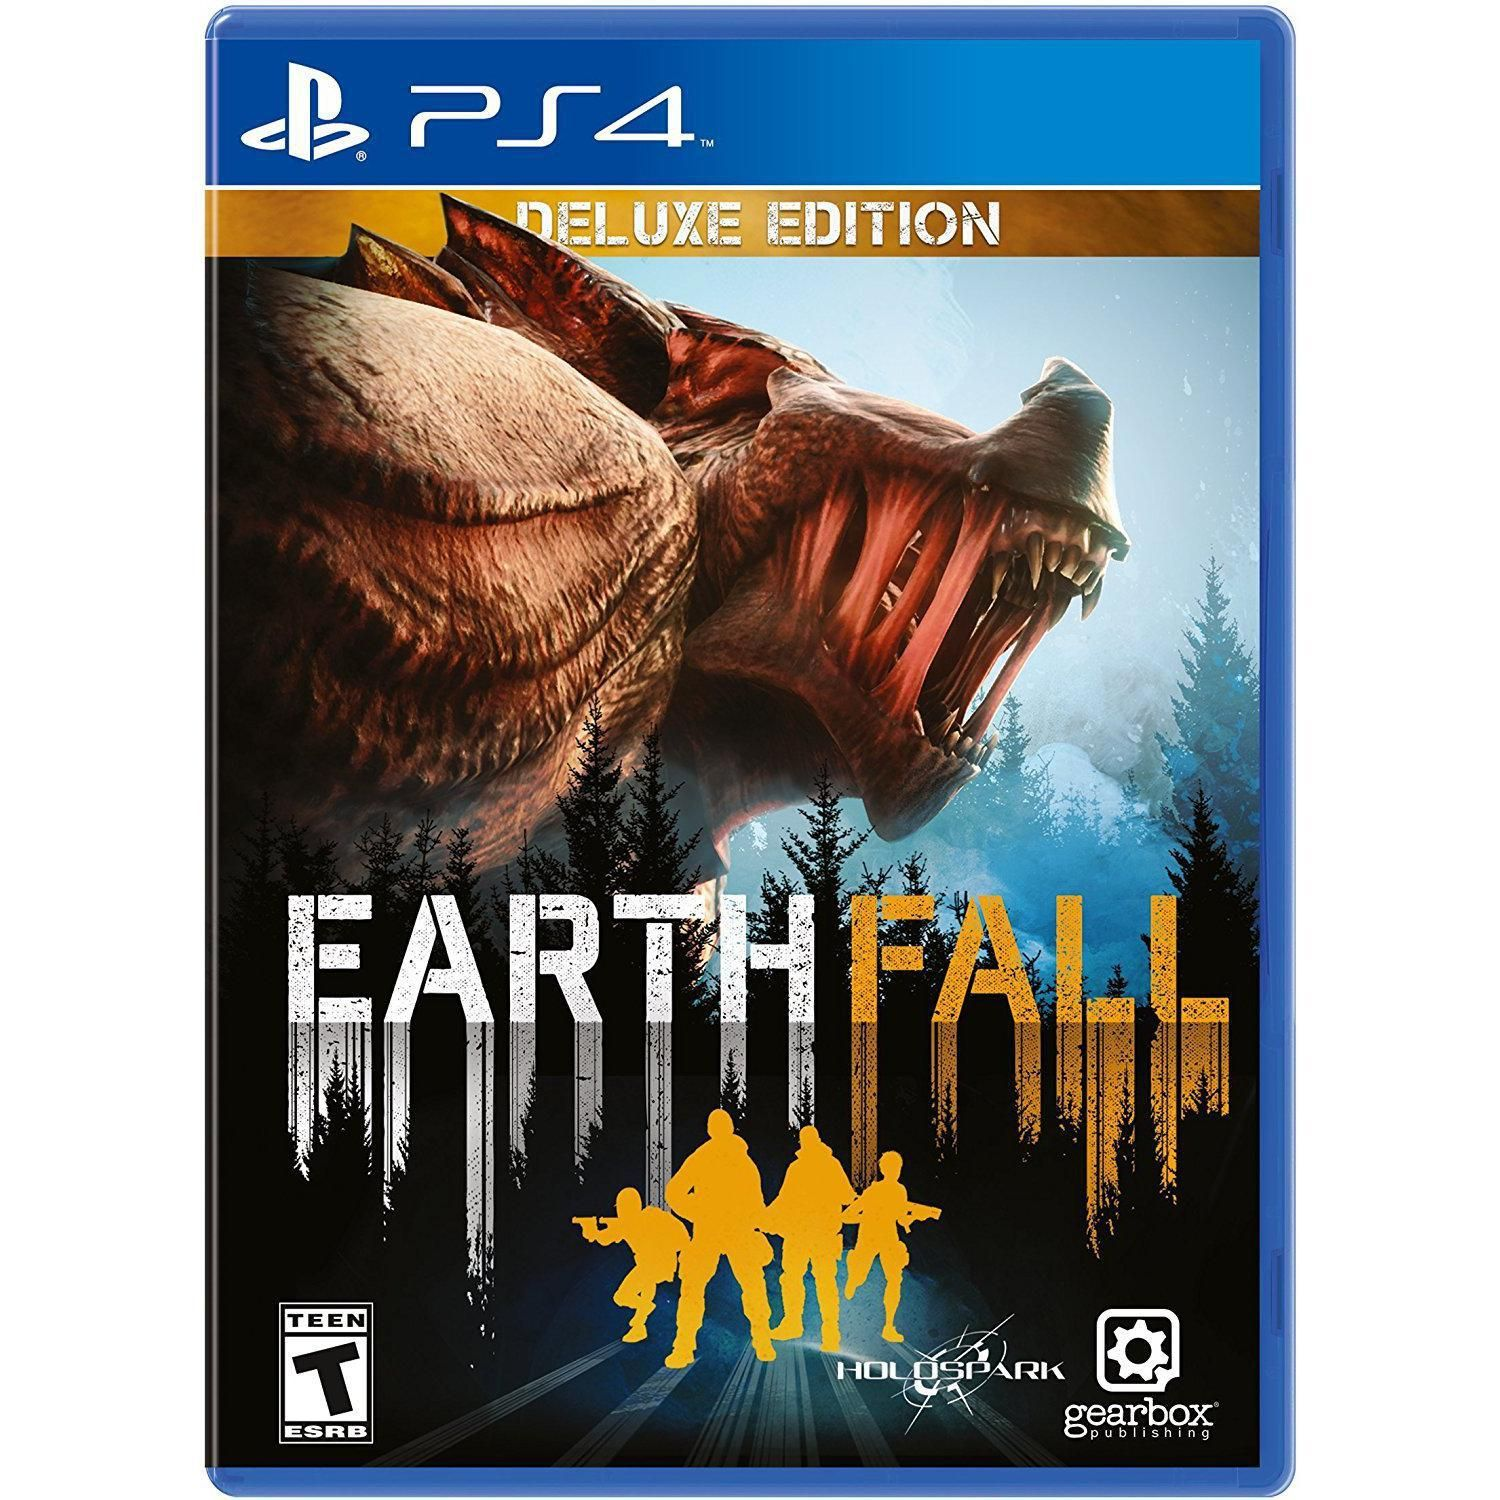 Earthfall Deluxe Edition Game for Playstation 4